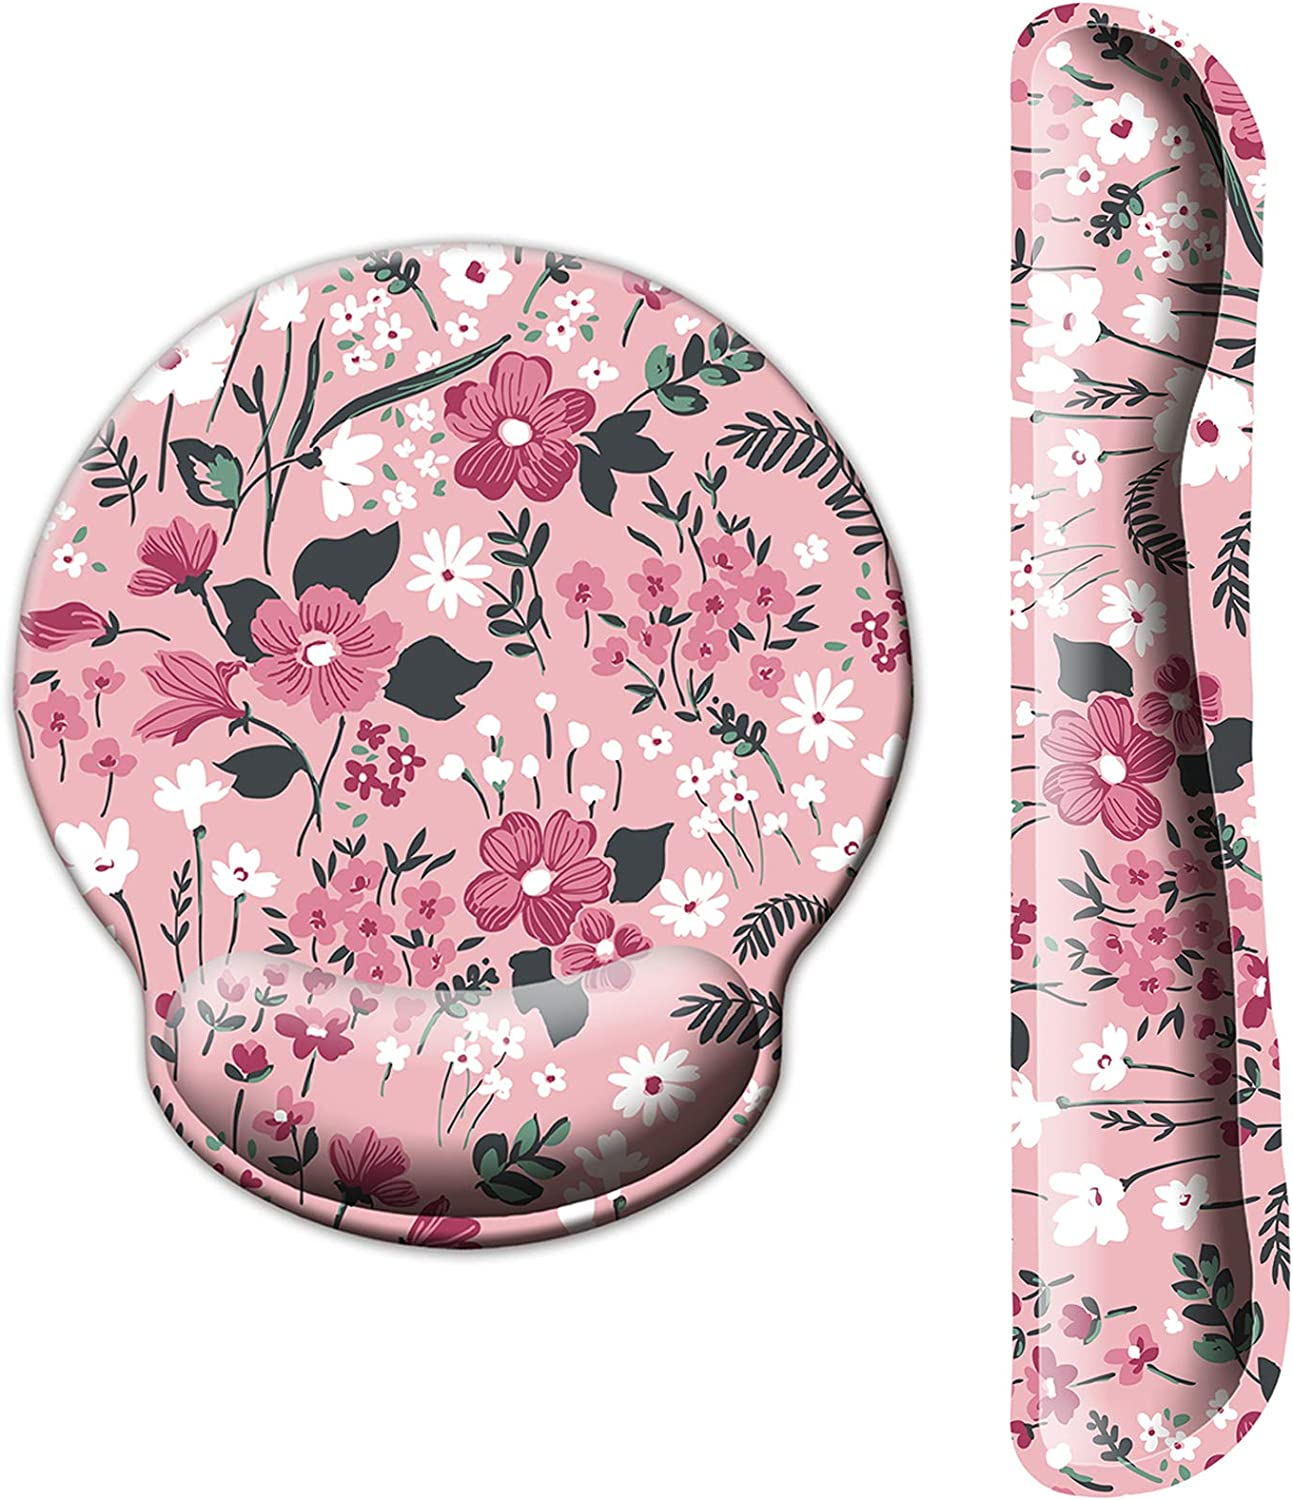 ITNRSIIET Upgraded Ergonomic Keyboard Wrist Rest and Mouse Wrist Rest Pad Set, Cute Flower Wrist Pad with Non-Slip Base for Computer, Laptop, Gaming, Working, Easy Typing & Pain Relief : Office Products